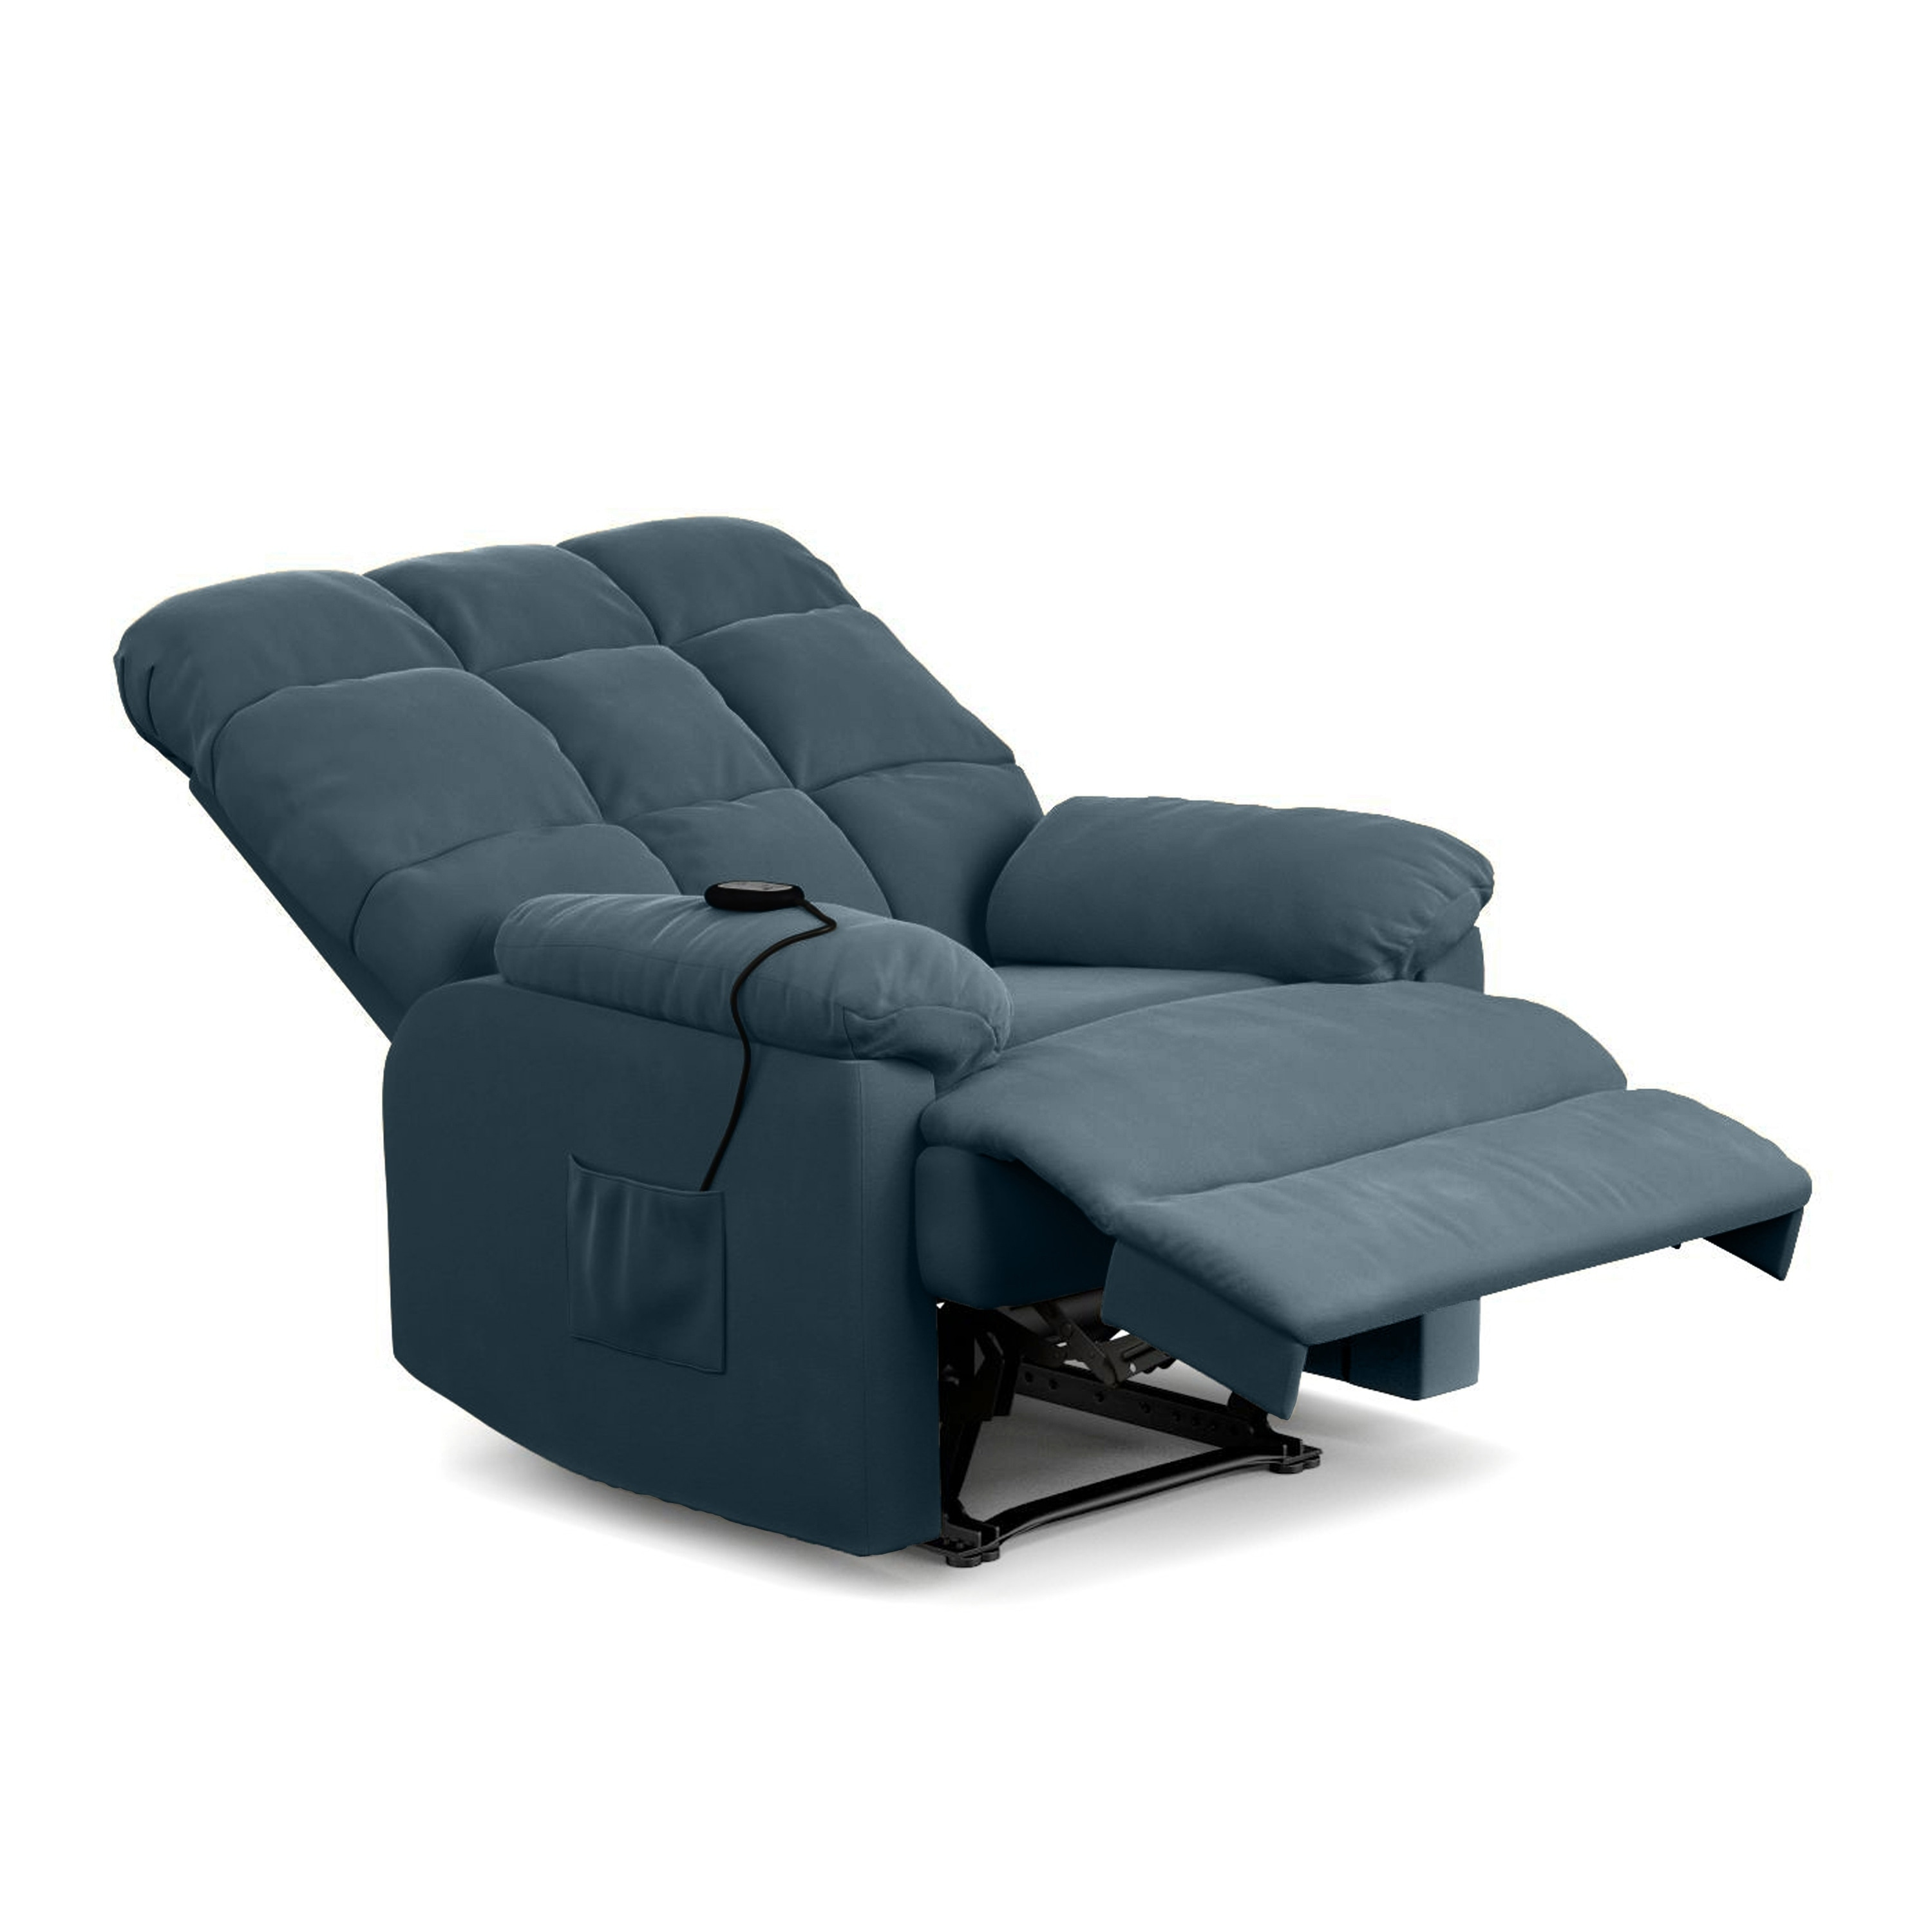 e21e57cb6f2 Shop ProLounger Power Recline and Lift Wall Hugger Chair in Blue Microfiber  - On Sale - Free Shipping Today - Overstock - 22309069